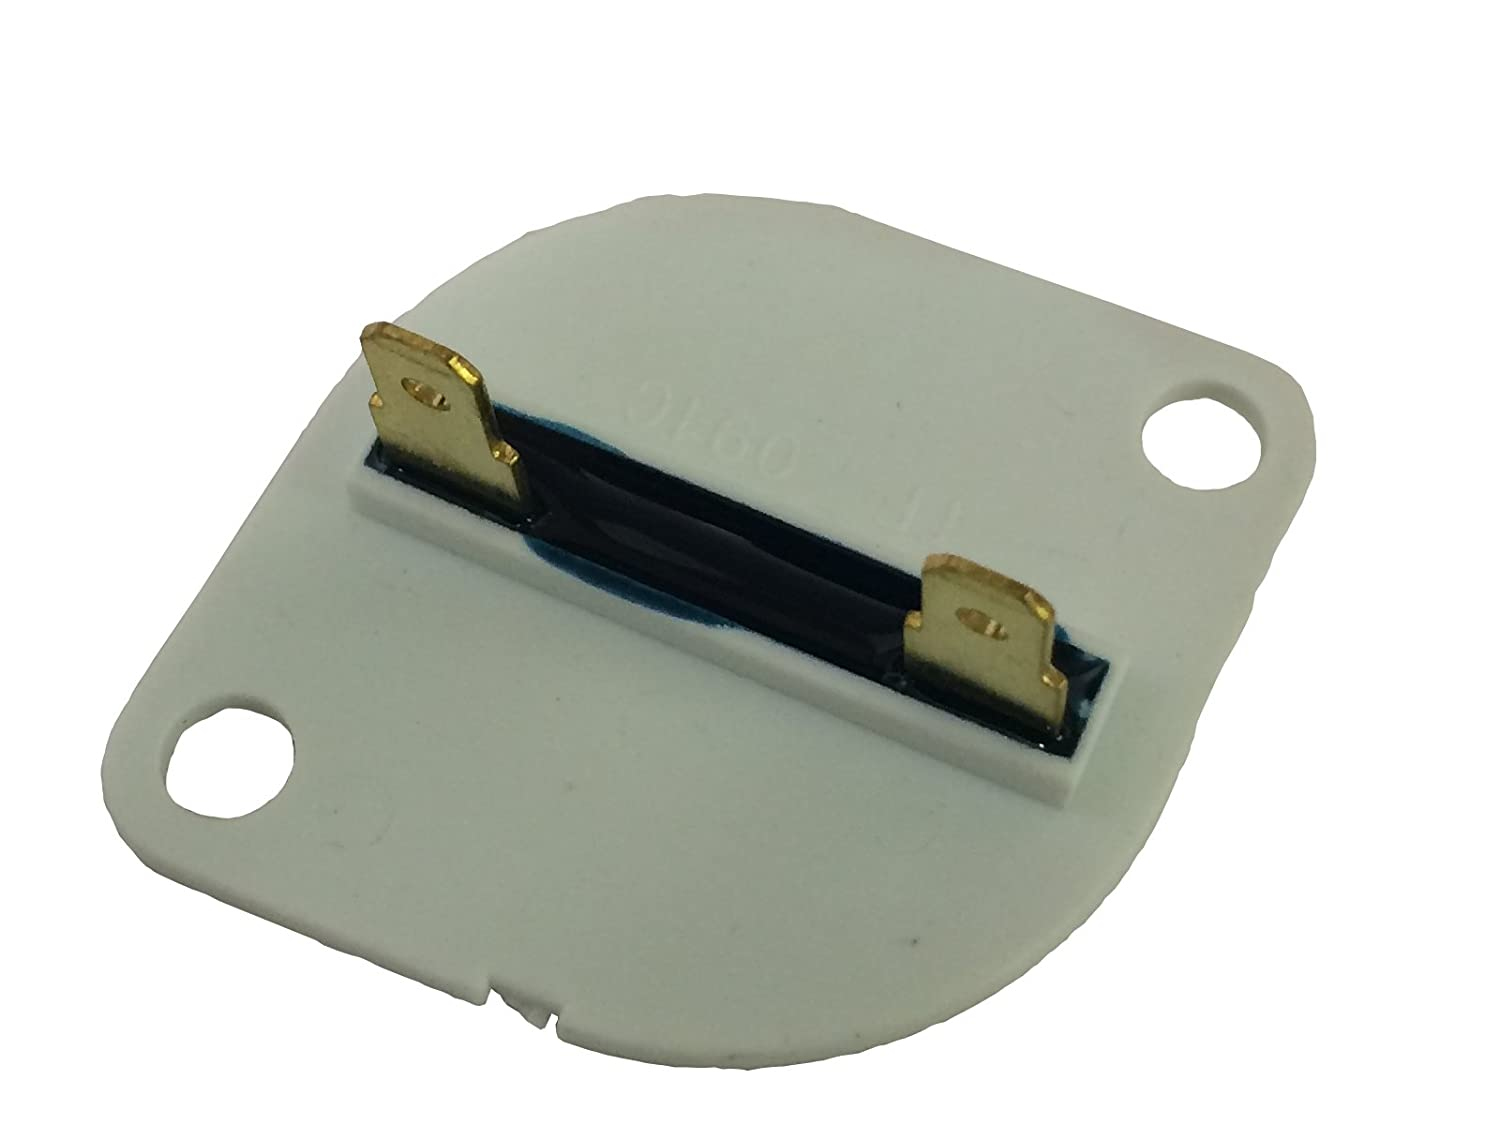 WP3390719 ( 3390719 ) Dryer Thermal fuse for Whirlpool, Kenmore Dryers